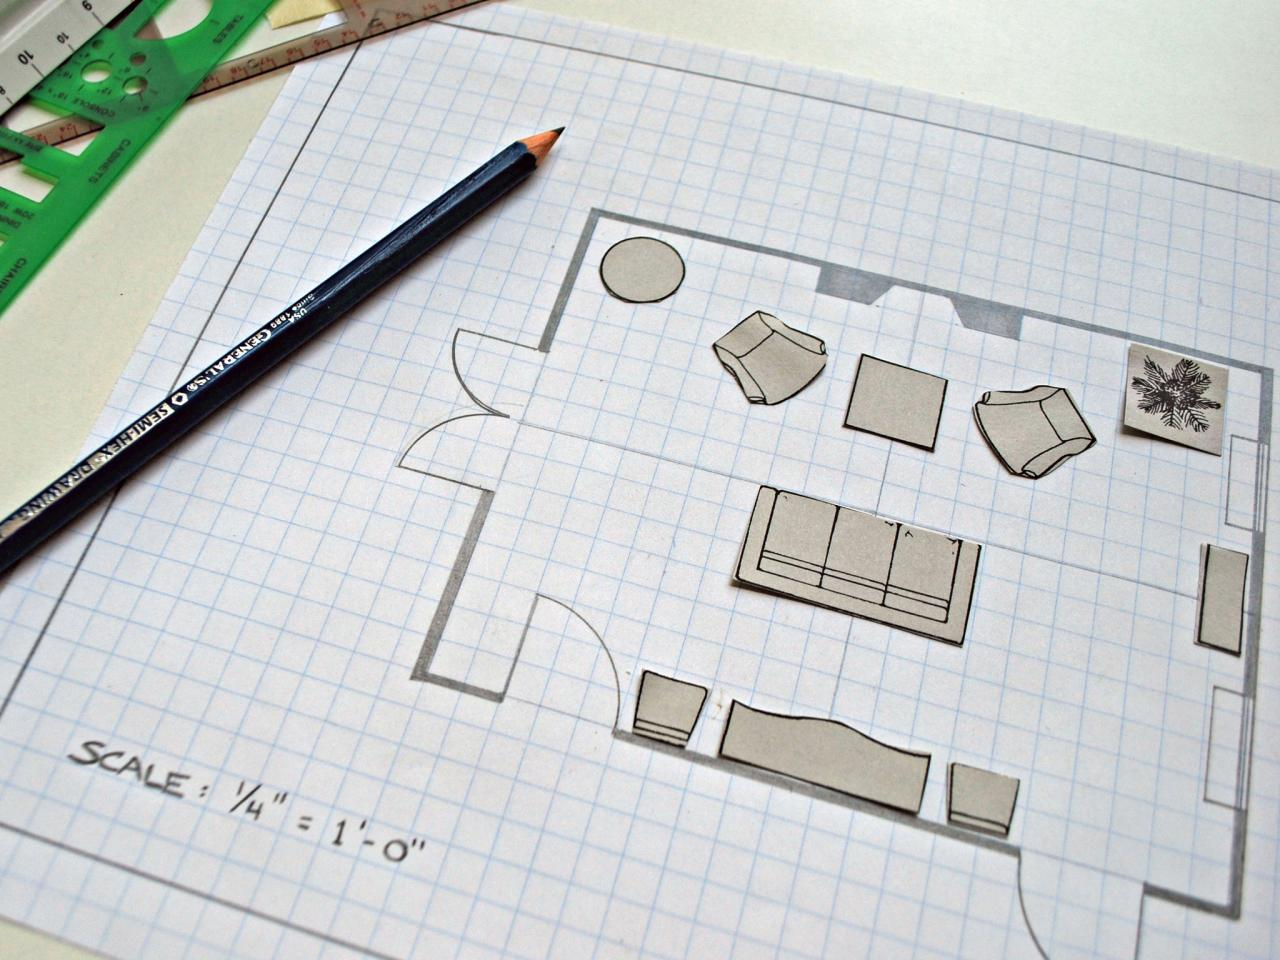 grid paper with to-scale furniture placement